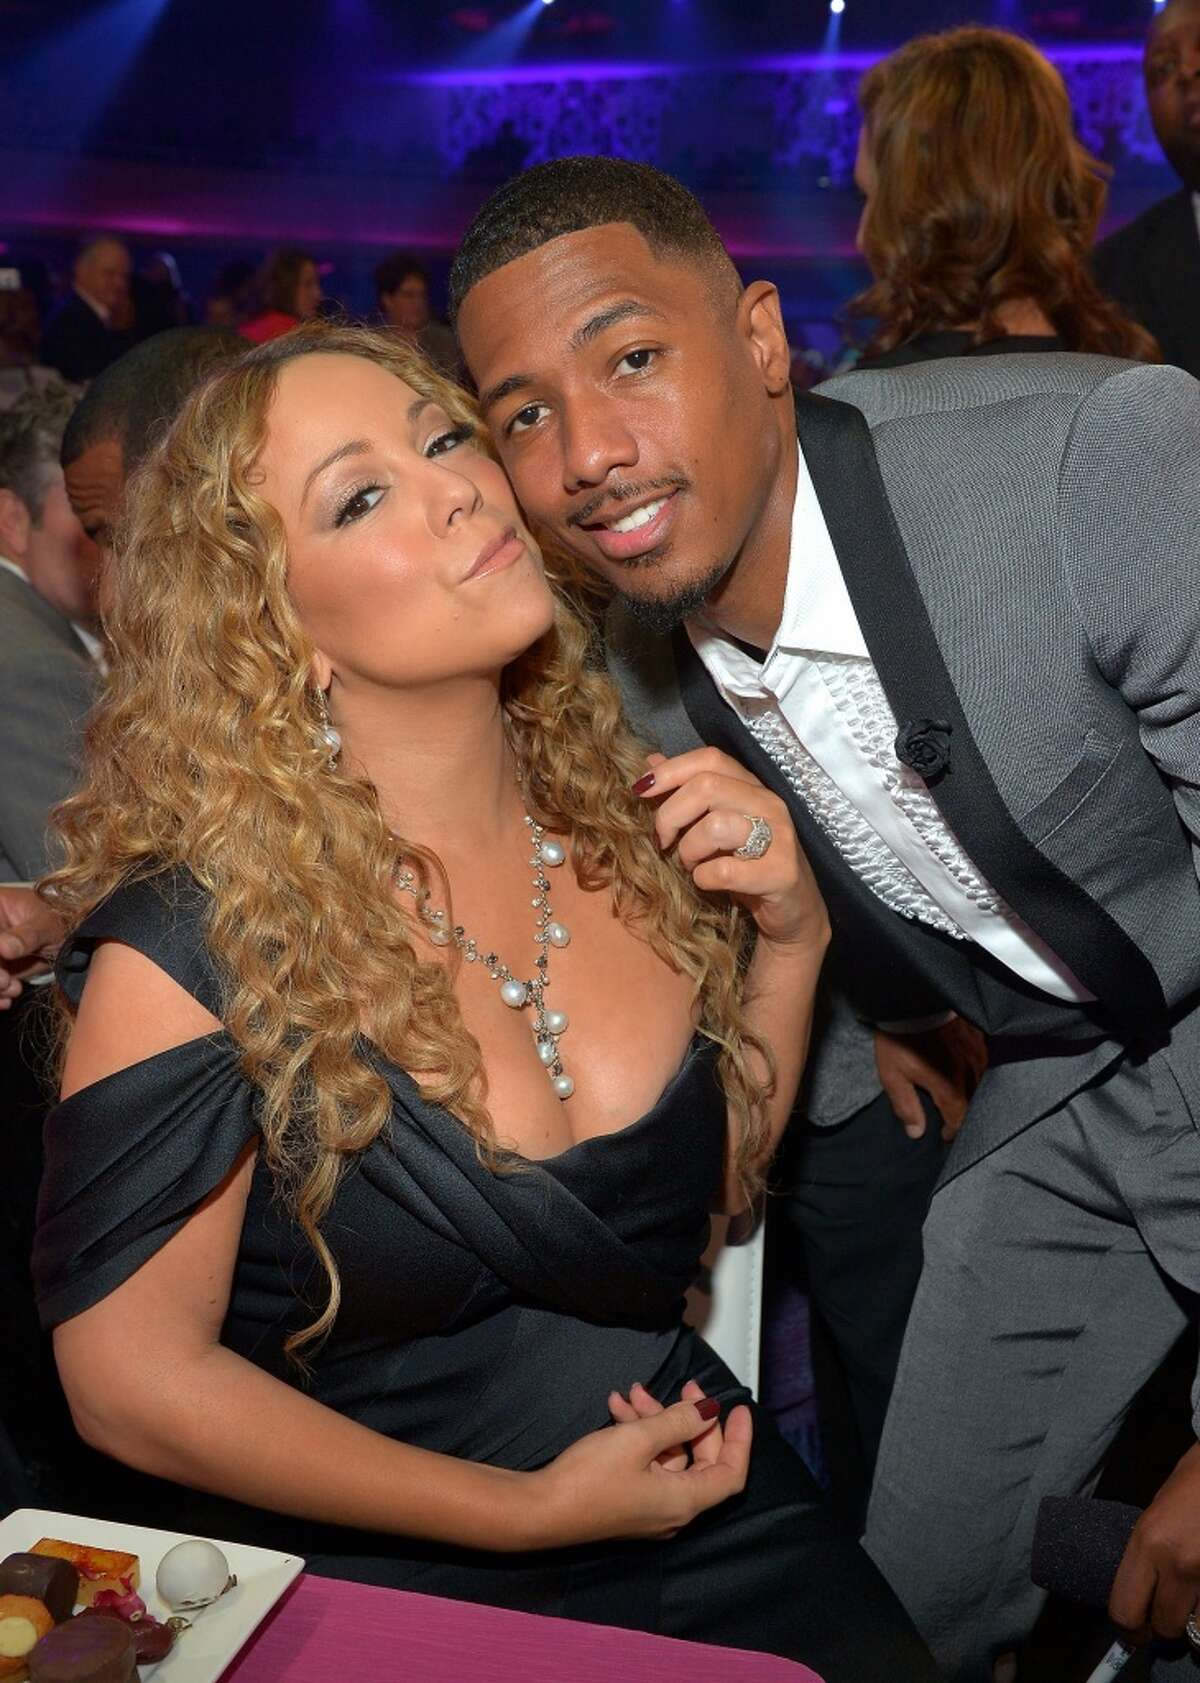 Mariah Carey and Nick Cannon had twins Moroccan and Monroe in 2011. The parents have since split.